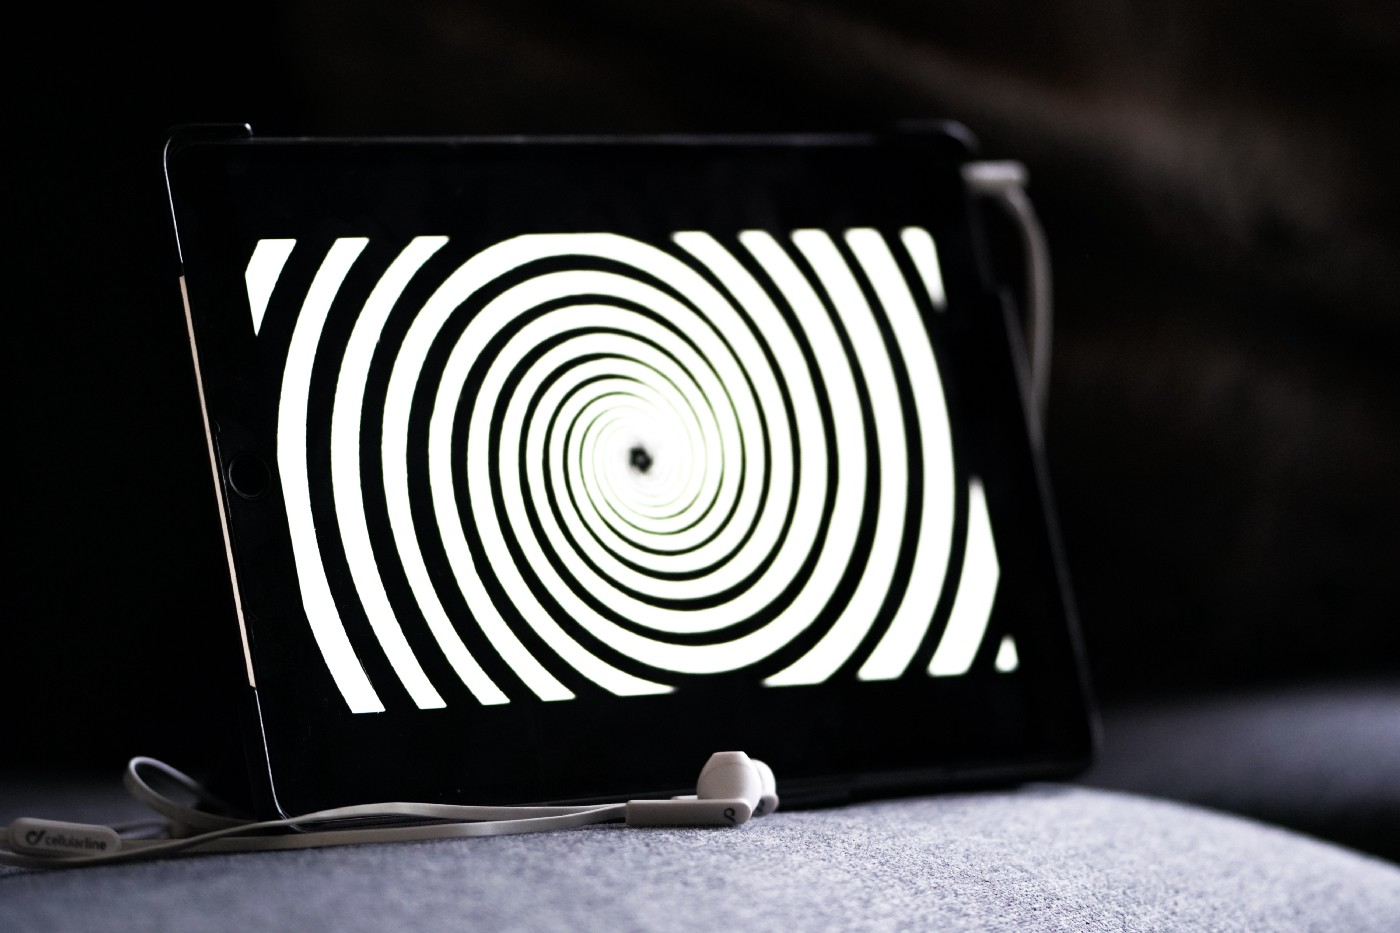 iPad displaying a black and white spiral pattern.